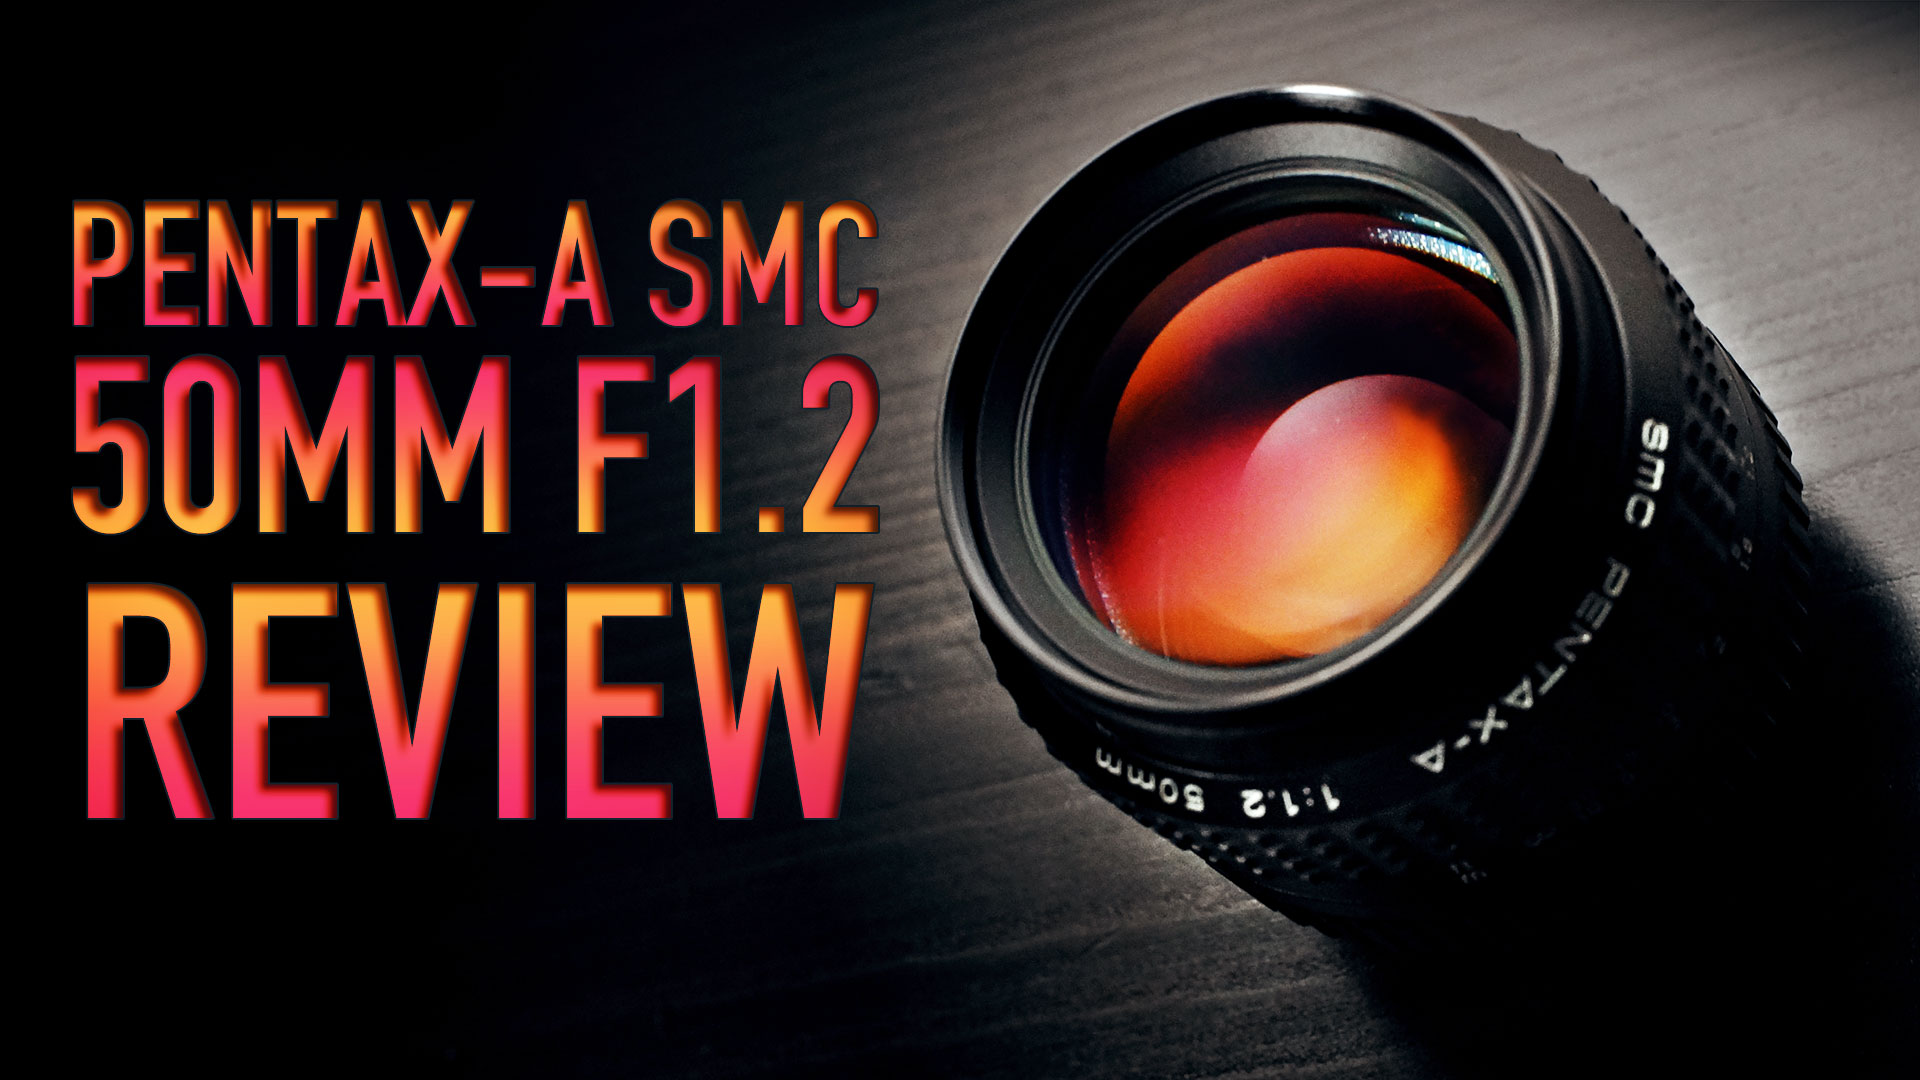 PENTAX-A SMC 50mm F1.2 Review